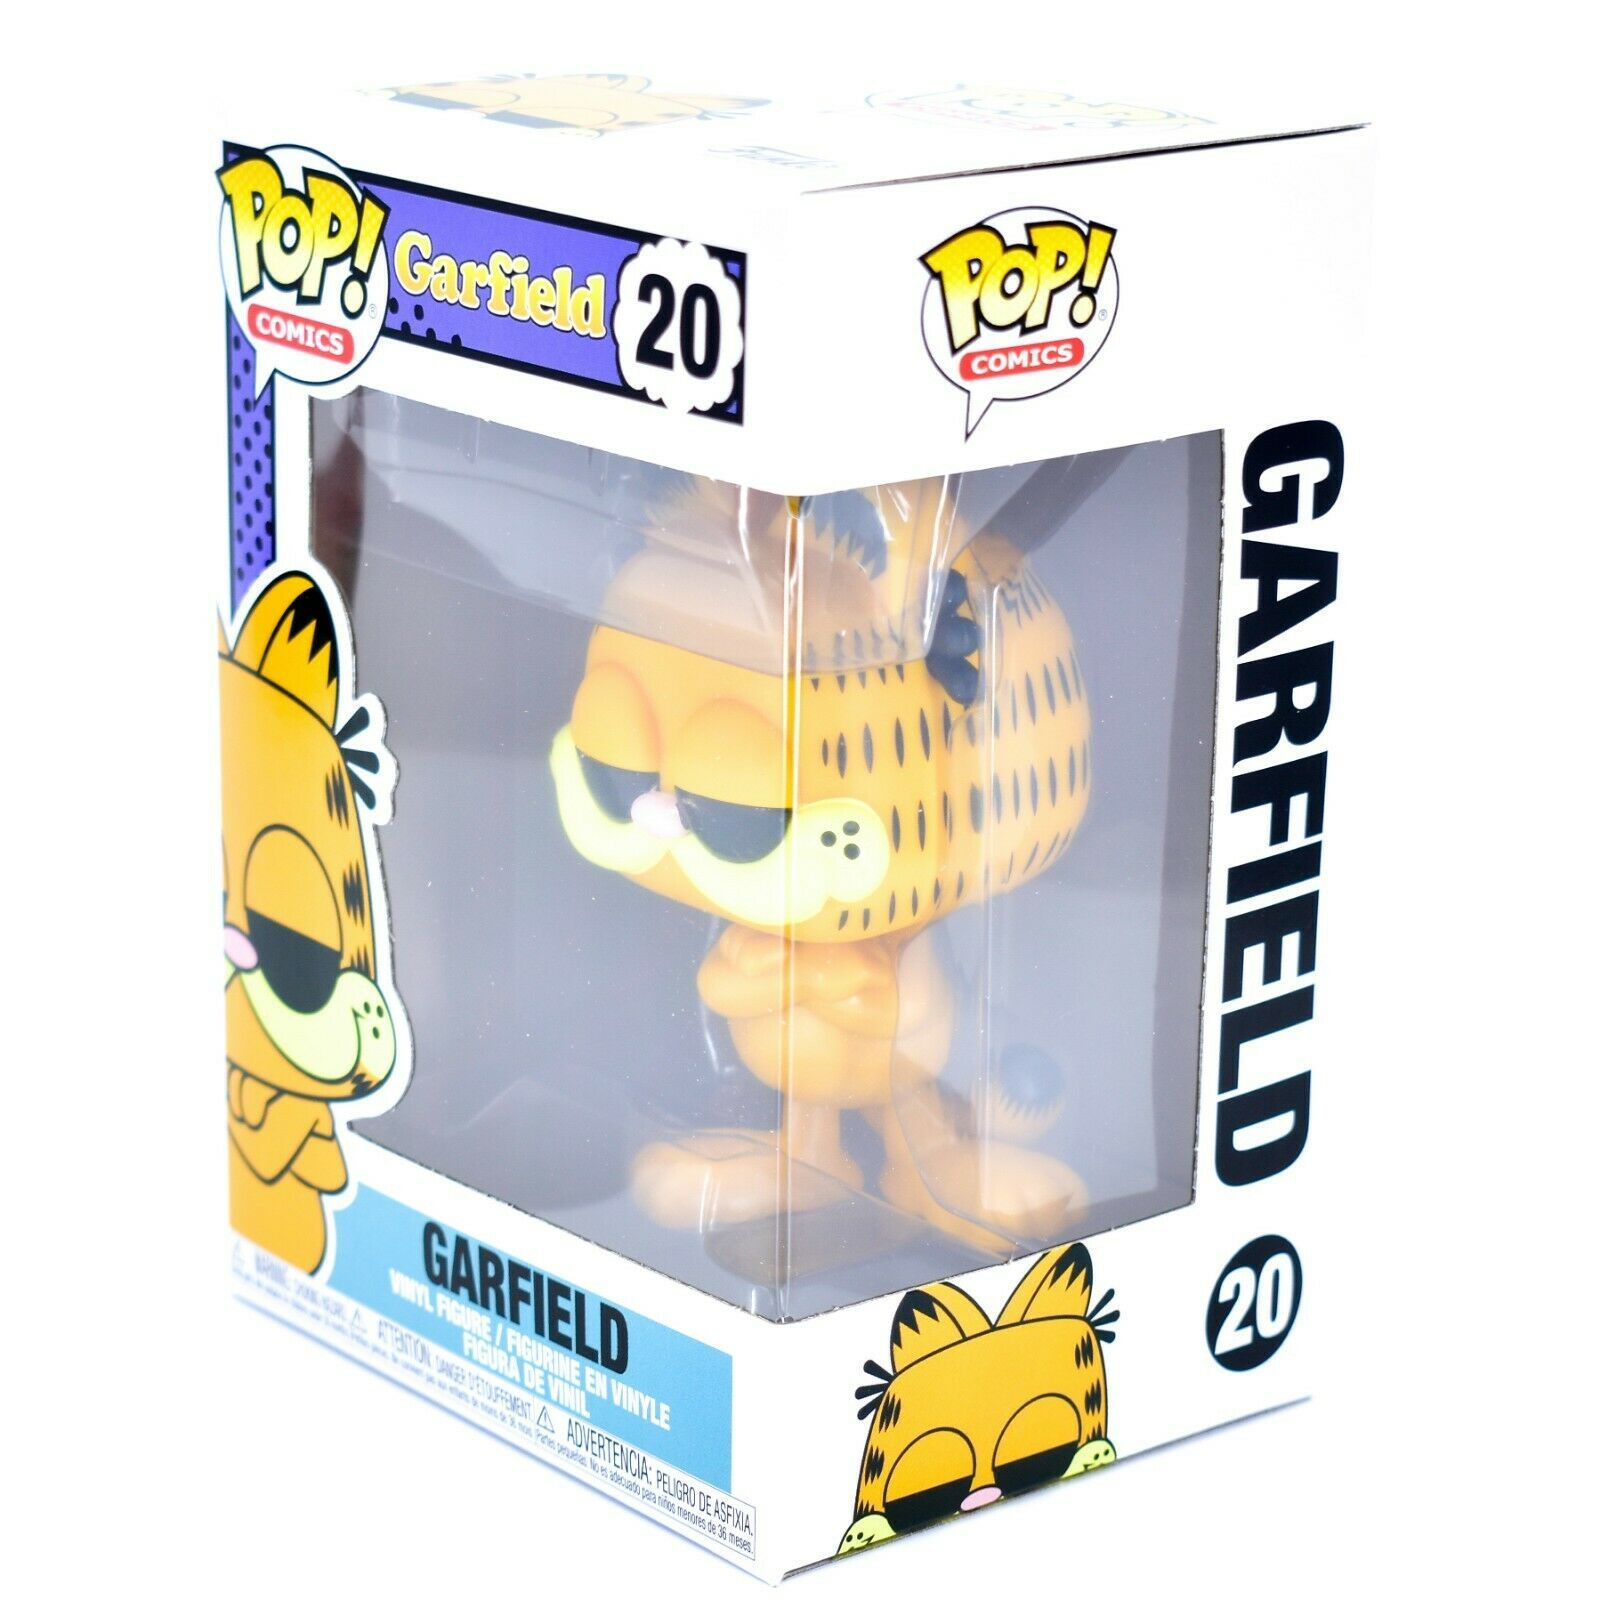 Funko Pop Comics Garfield 20 Vinyl Action Figure